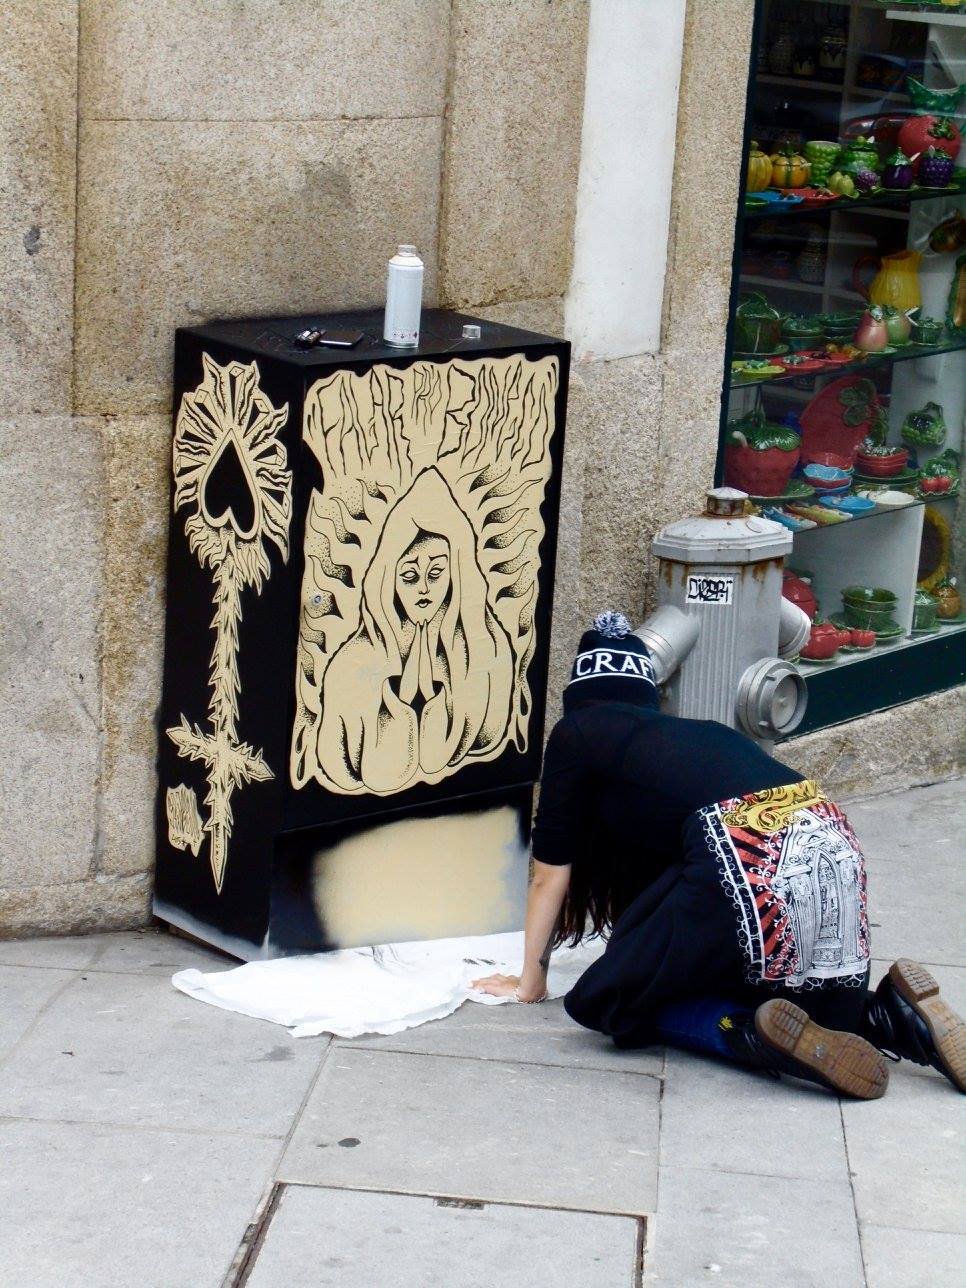 A street artist at work in Porto, Portugal